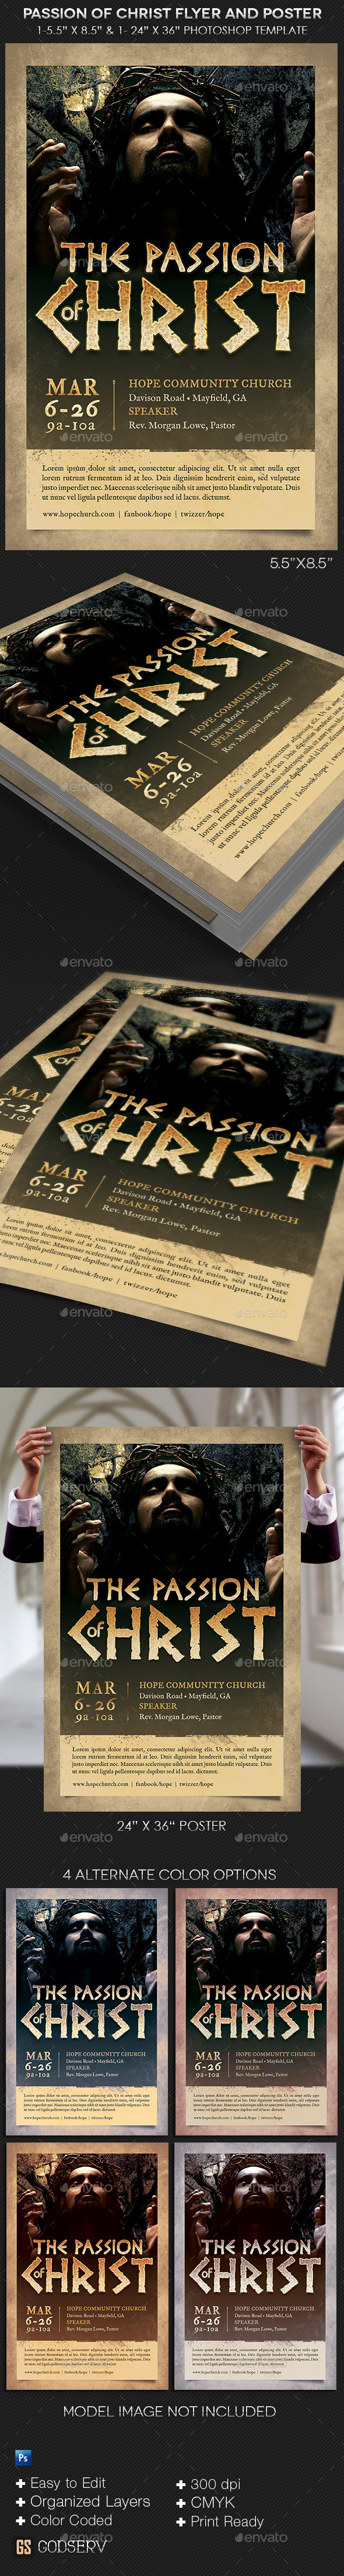 Christ Passion Flyer Poster Template - Church Flyers